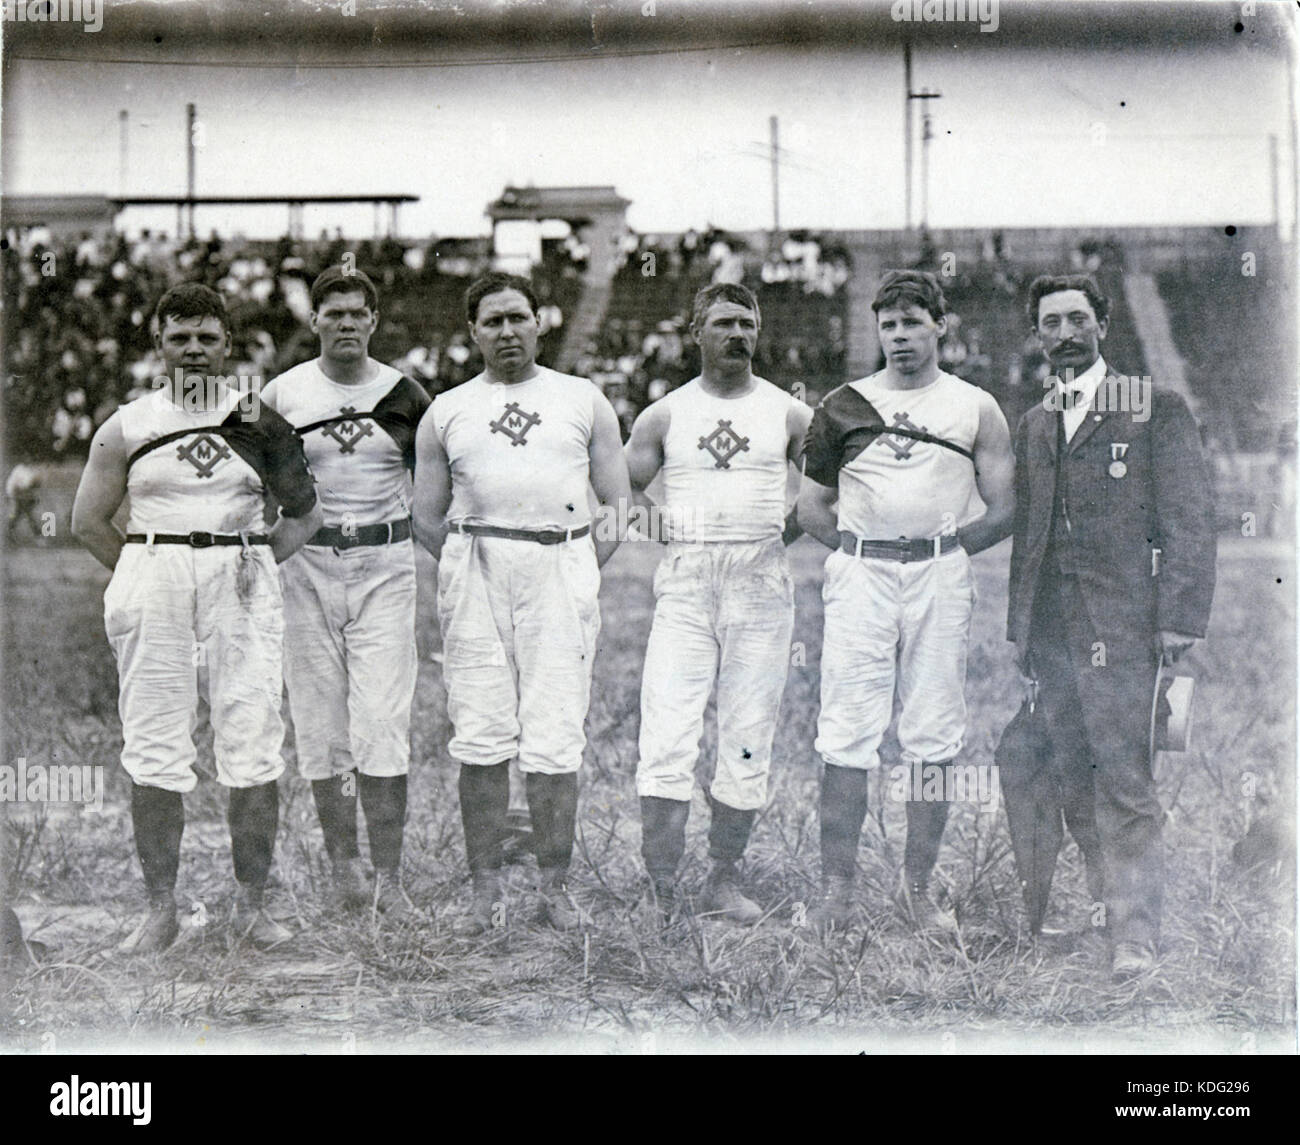 Milwaukee Athletic Club champions of the 1904 Olympic Tug of War competition. Left to right, H. Seiling, C. Magnussen, - Stock Image